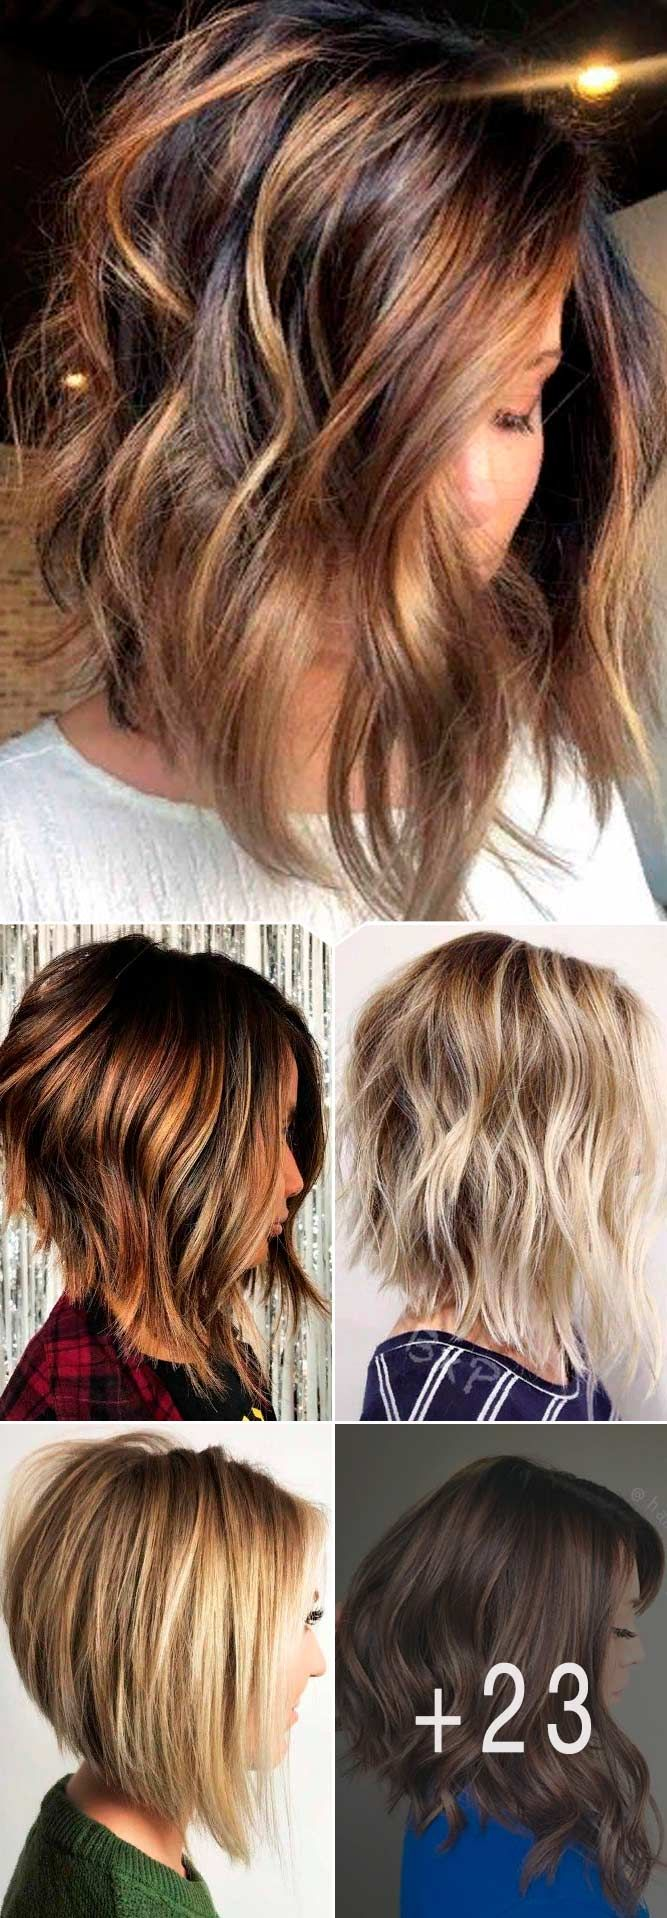 Ideas Of Inverted Bob Hairstyles To Refresh Your Style ★ All the inverted bob hairstyles: stacked, choppy, short, curly, with side bangs, with layers, are gathered here! #glaminati #lifestyle #invertedbob